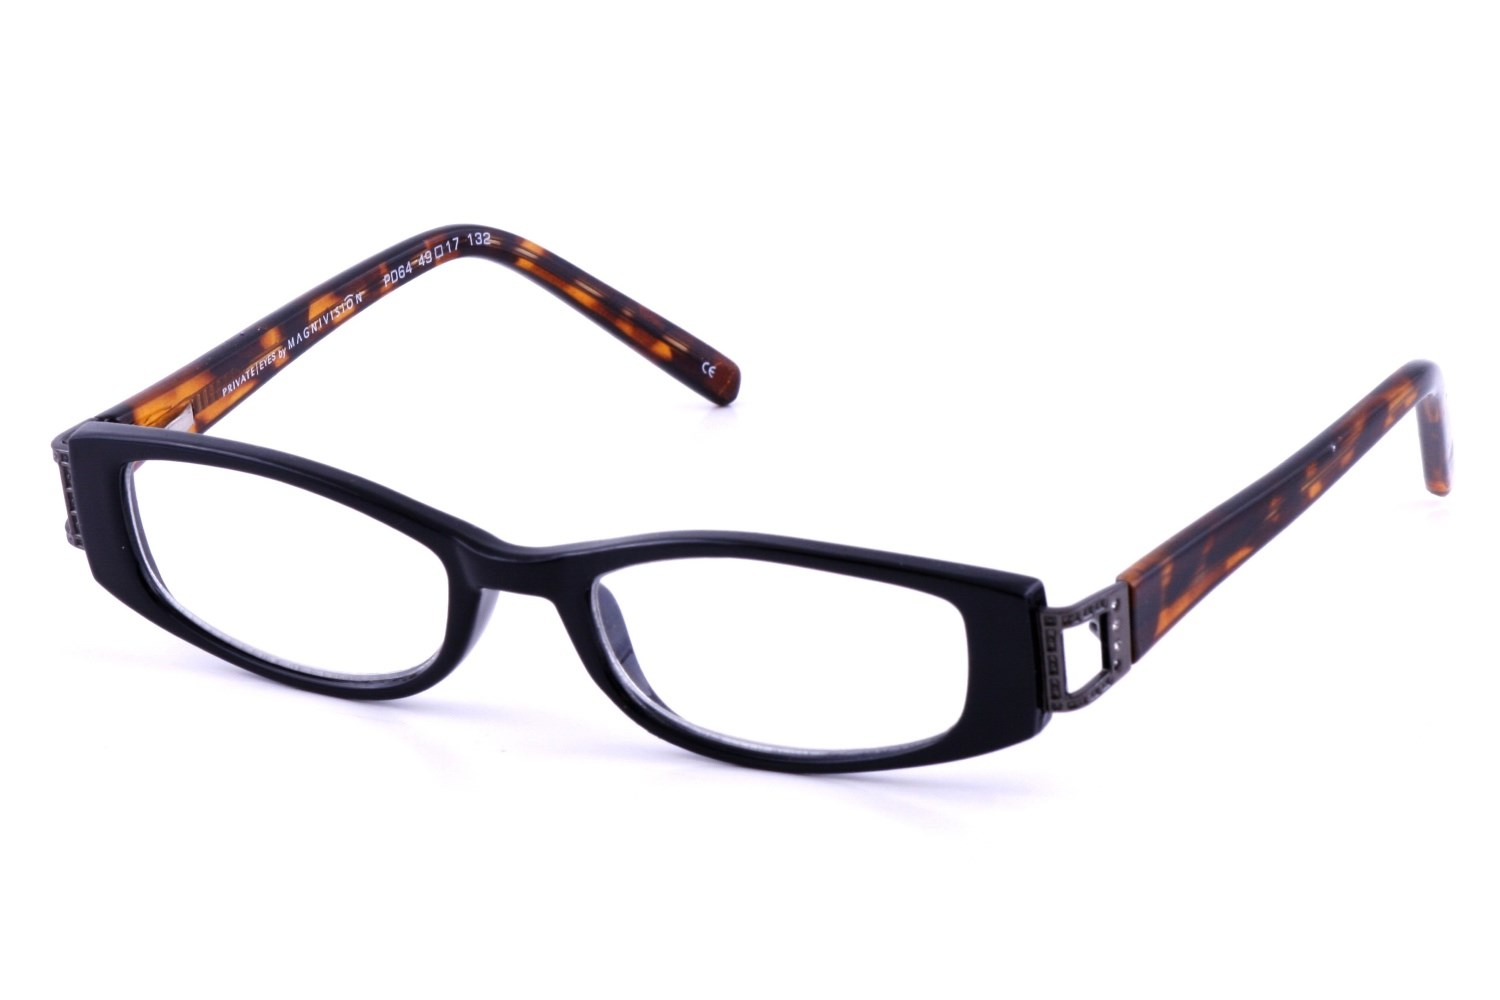 chelsea reading glasses aclenswearsunglasses